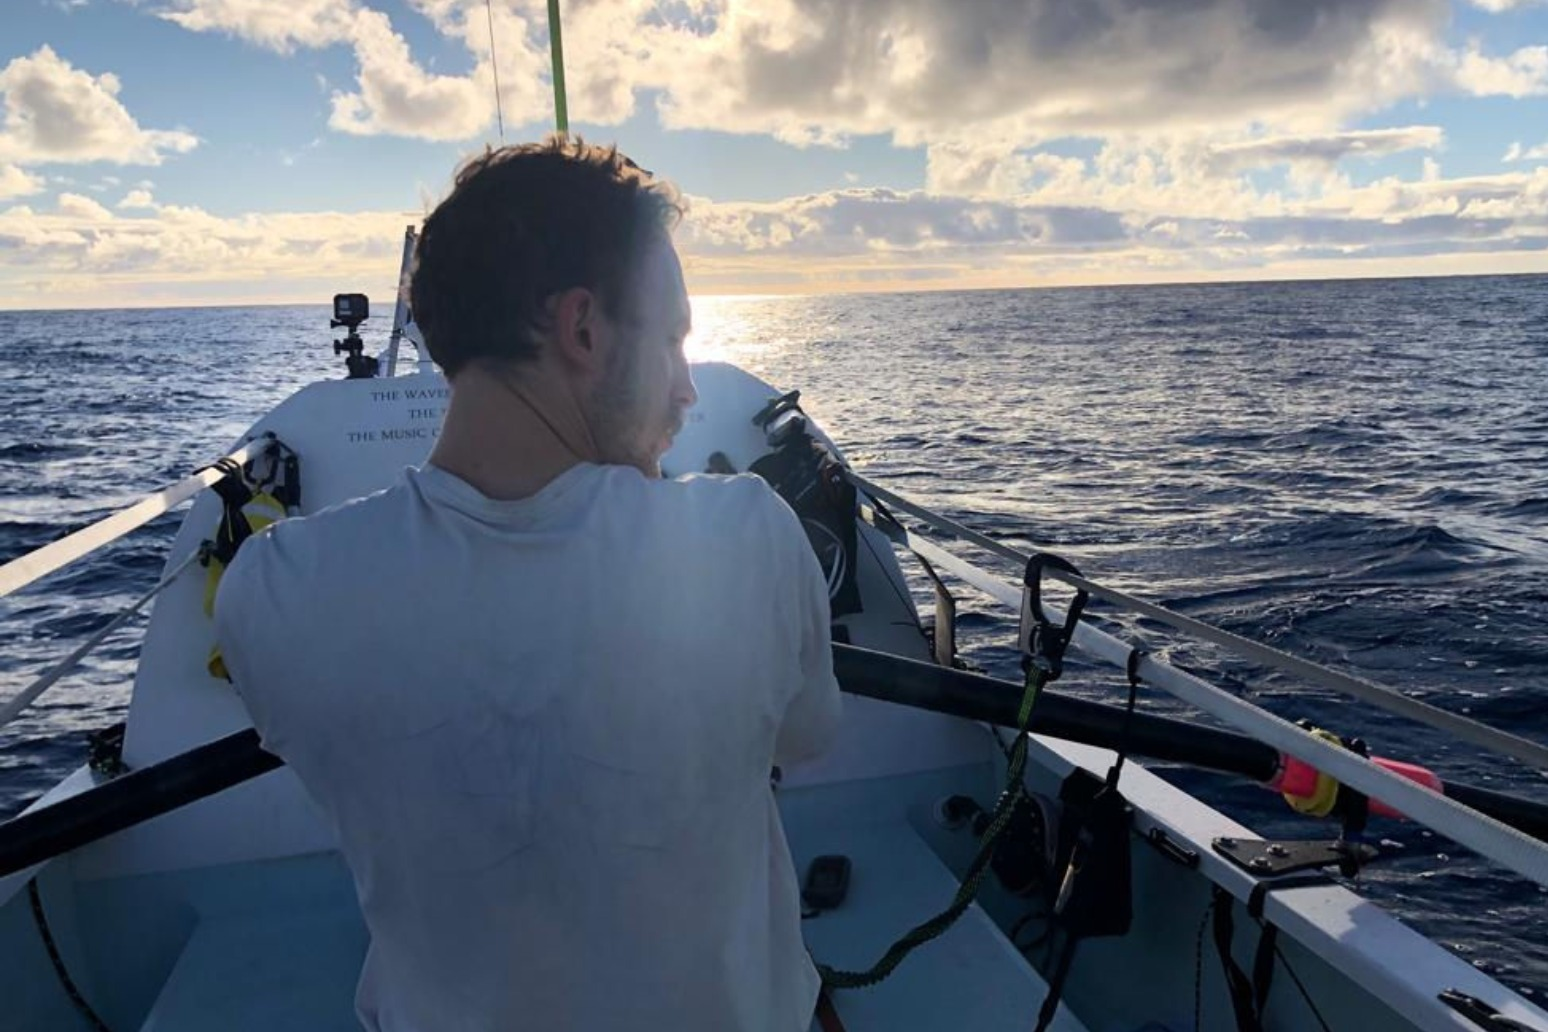 BROTHERS ROWING ATLANTIC WILL CELEBRATE NEW YEAR WITH WHISKY AND BAGPIPE SOLO